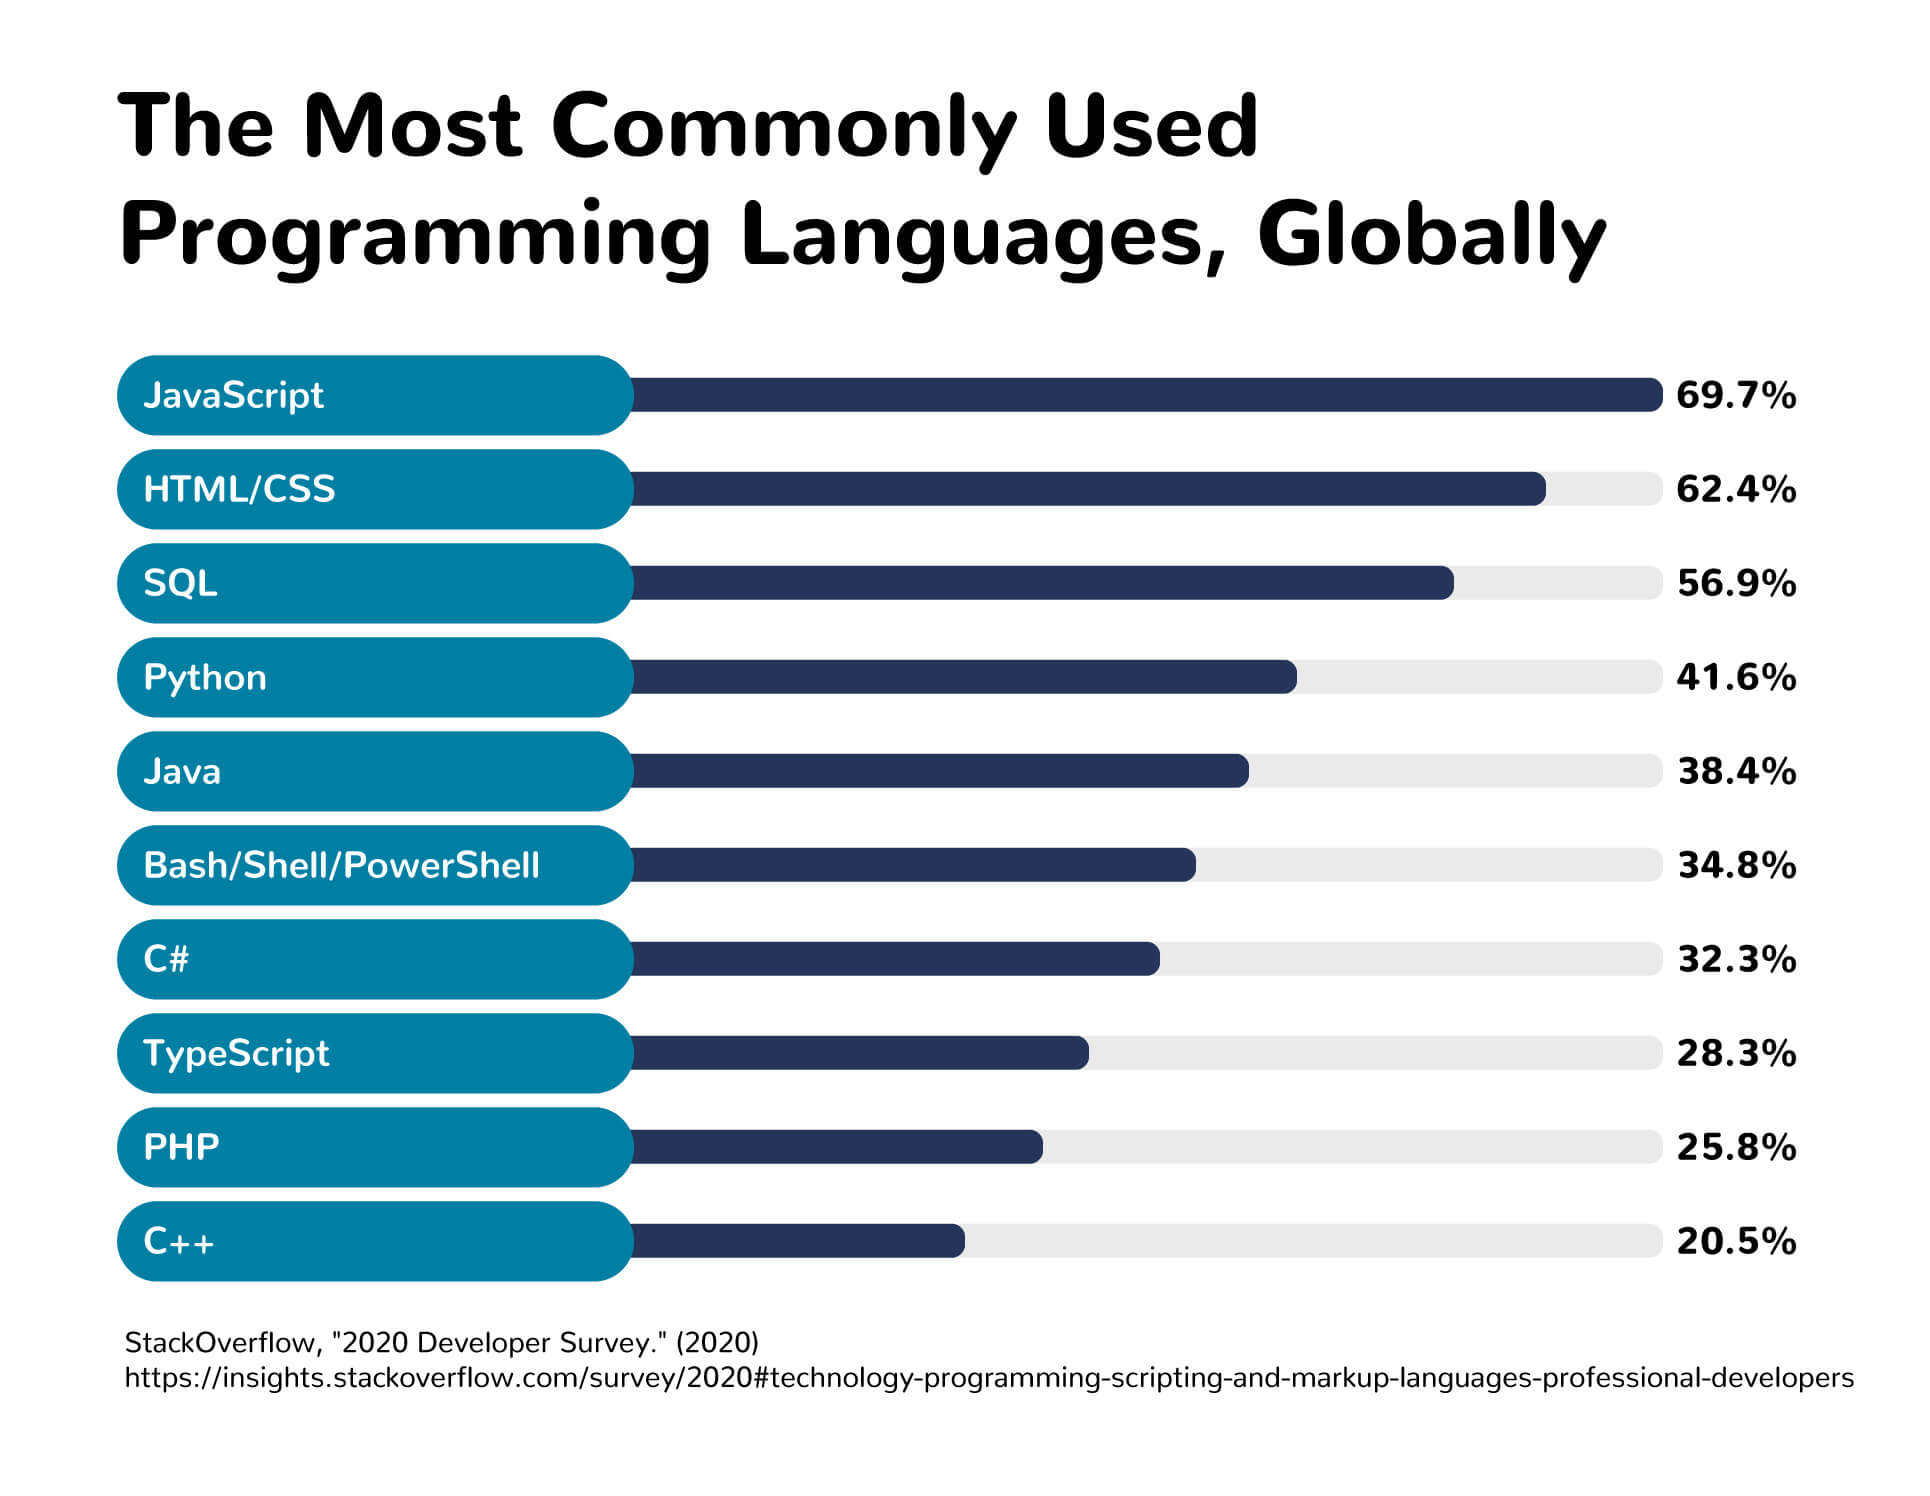 A chart showing the most commonly used programming languages globally